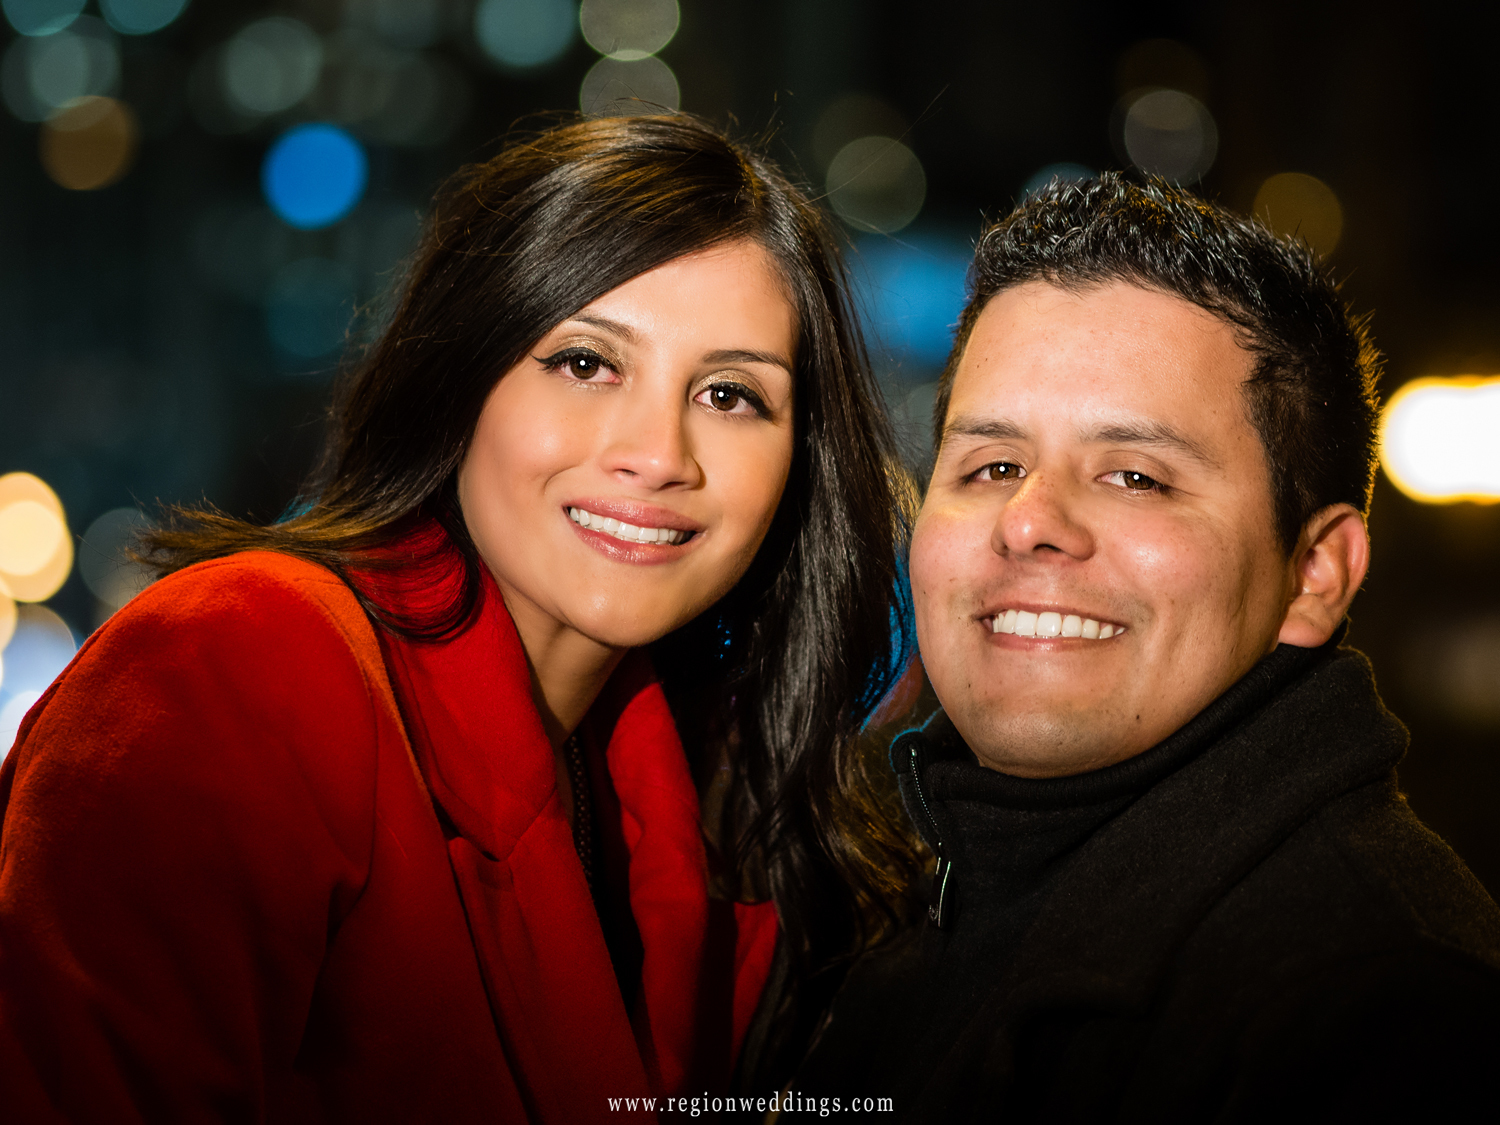 A newly engaged couple smiles for the camera on the streets of Chicago at night.